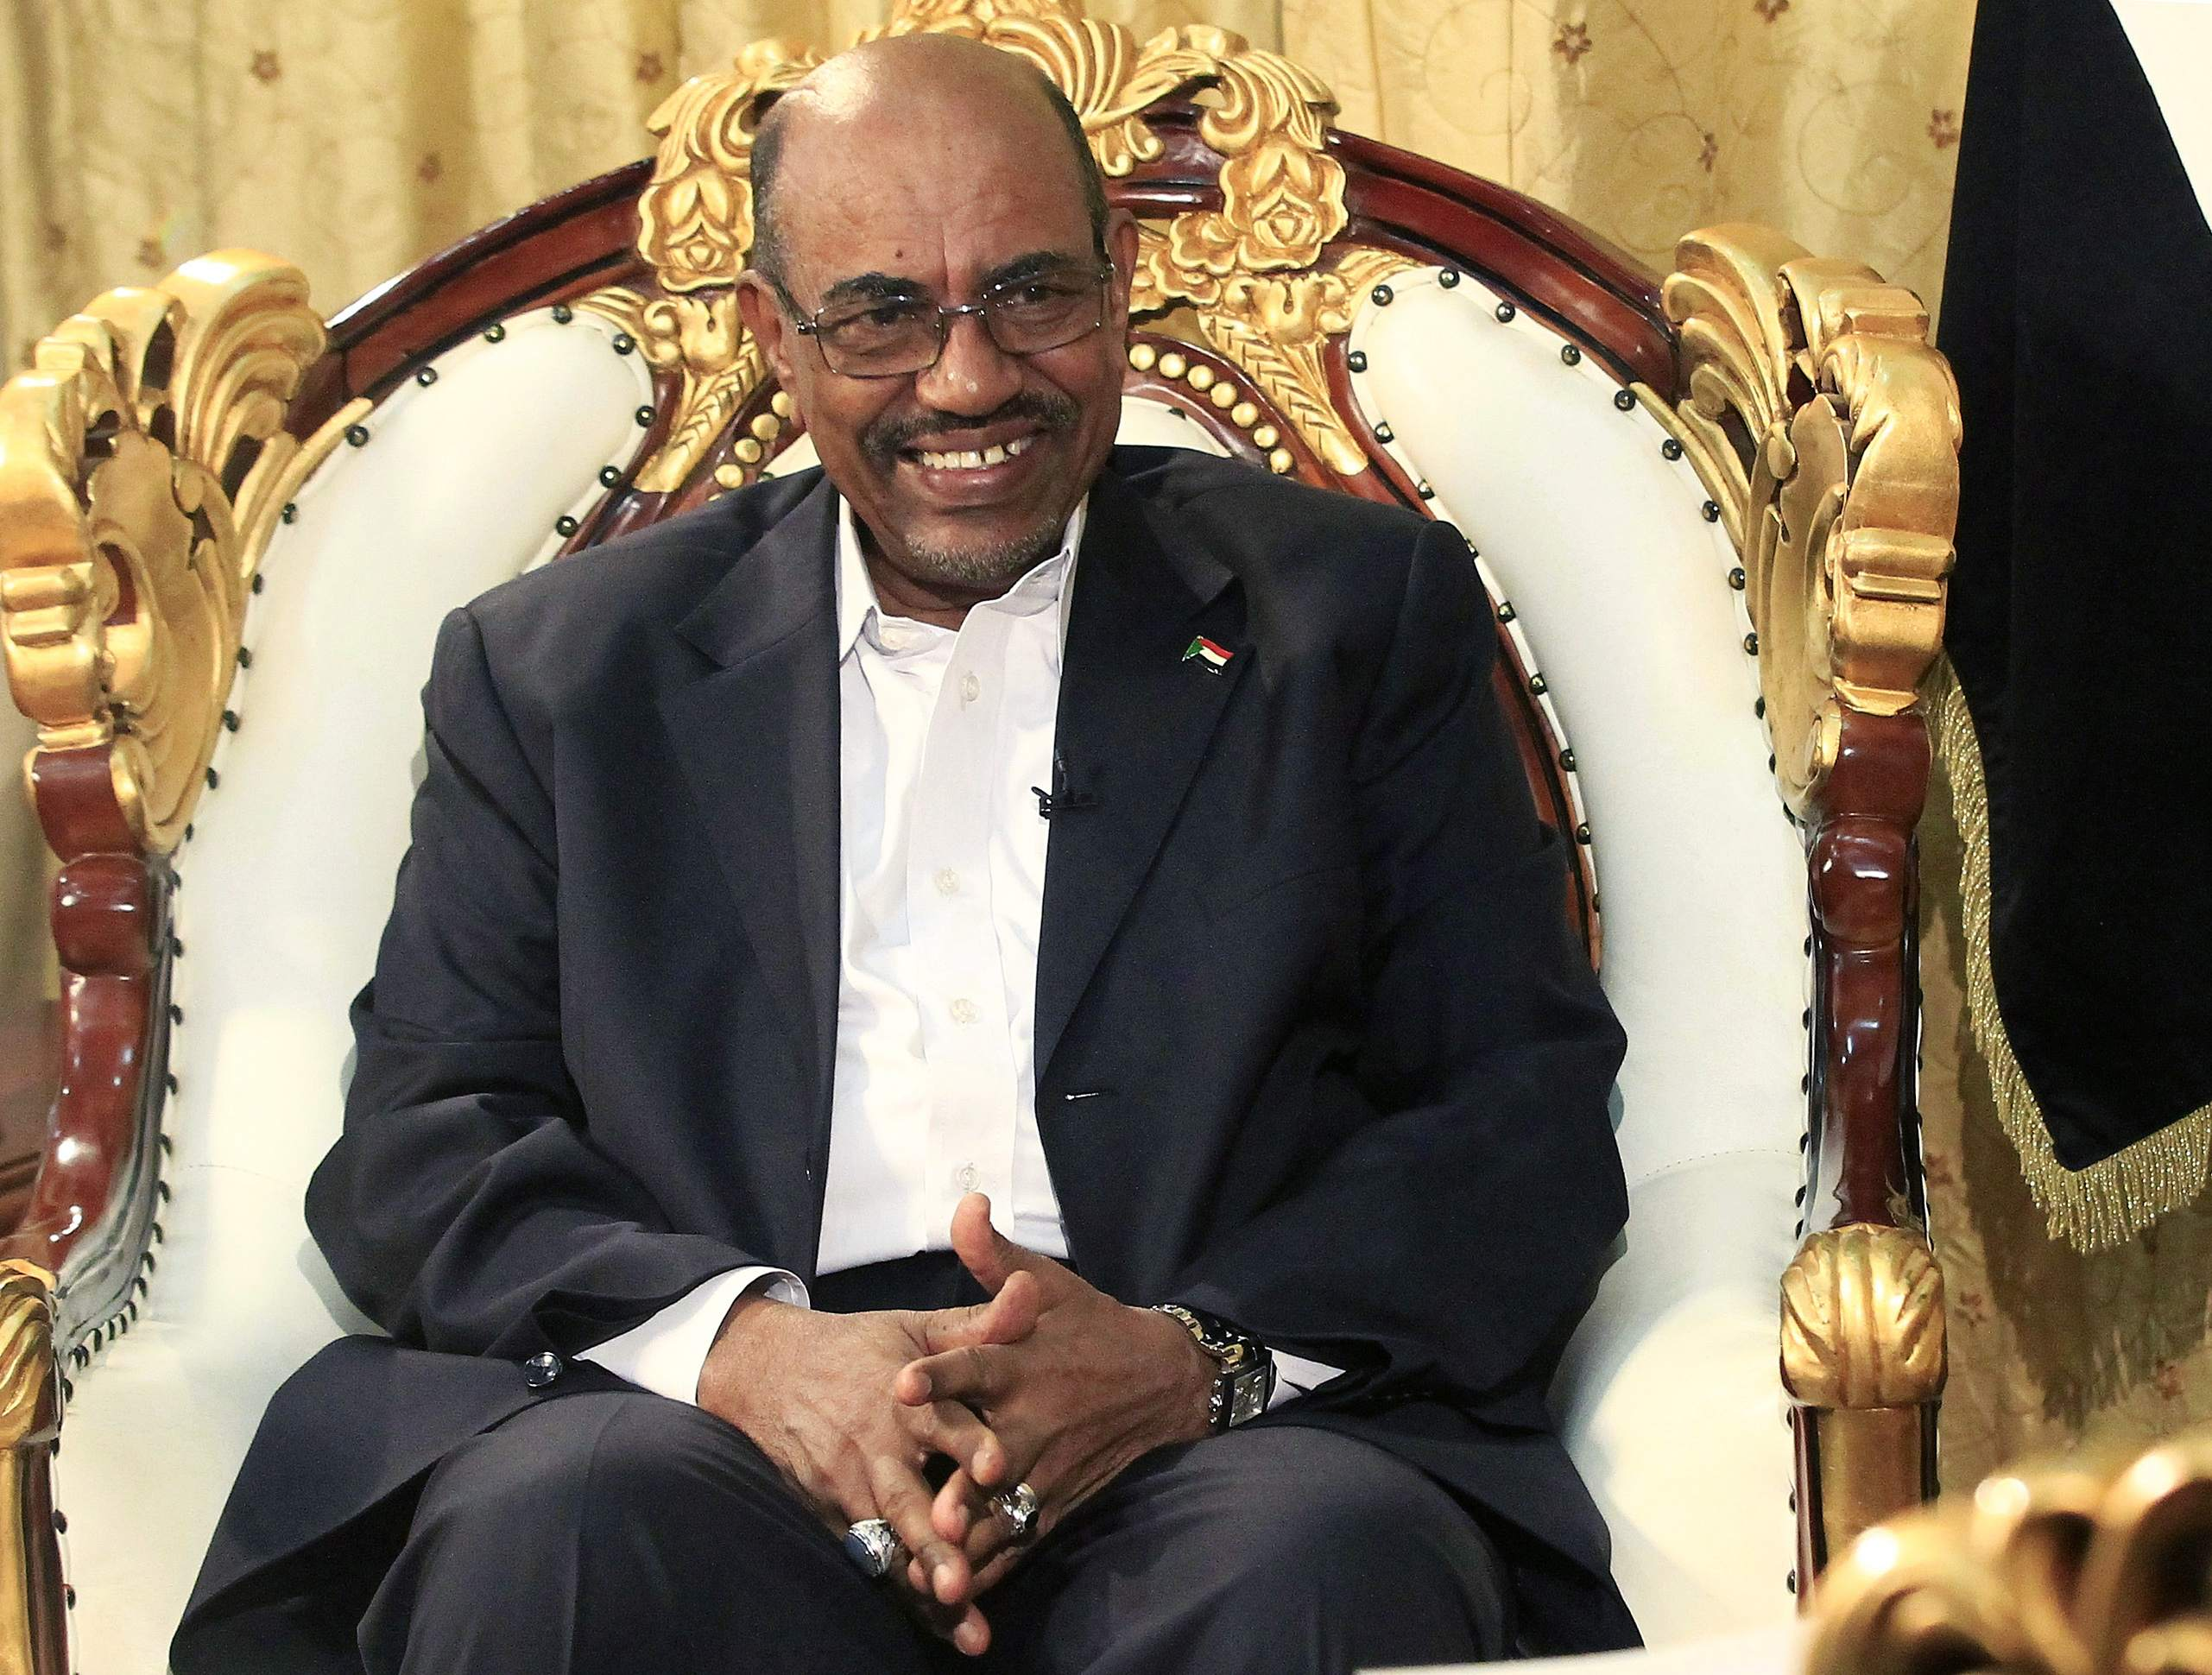 Sudan's Bashir Claims Victory over ICC After Court Shelves Darfur Probe